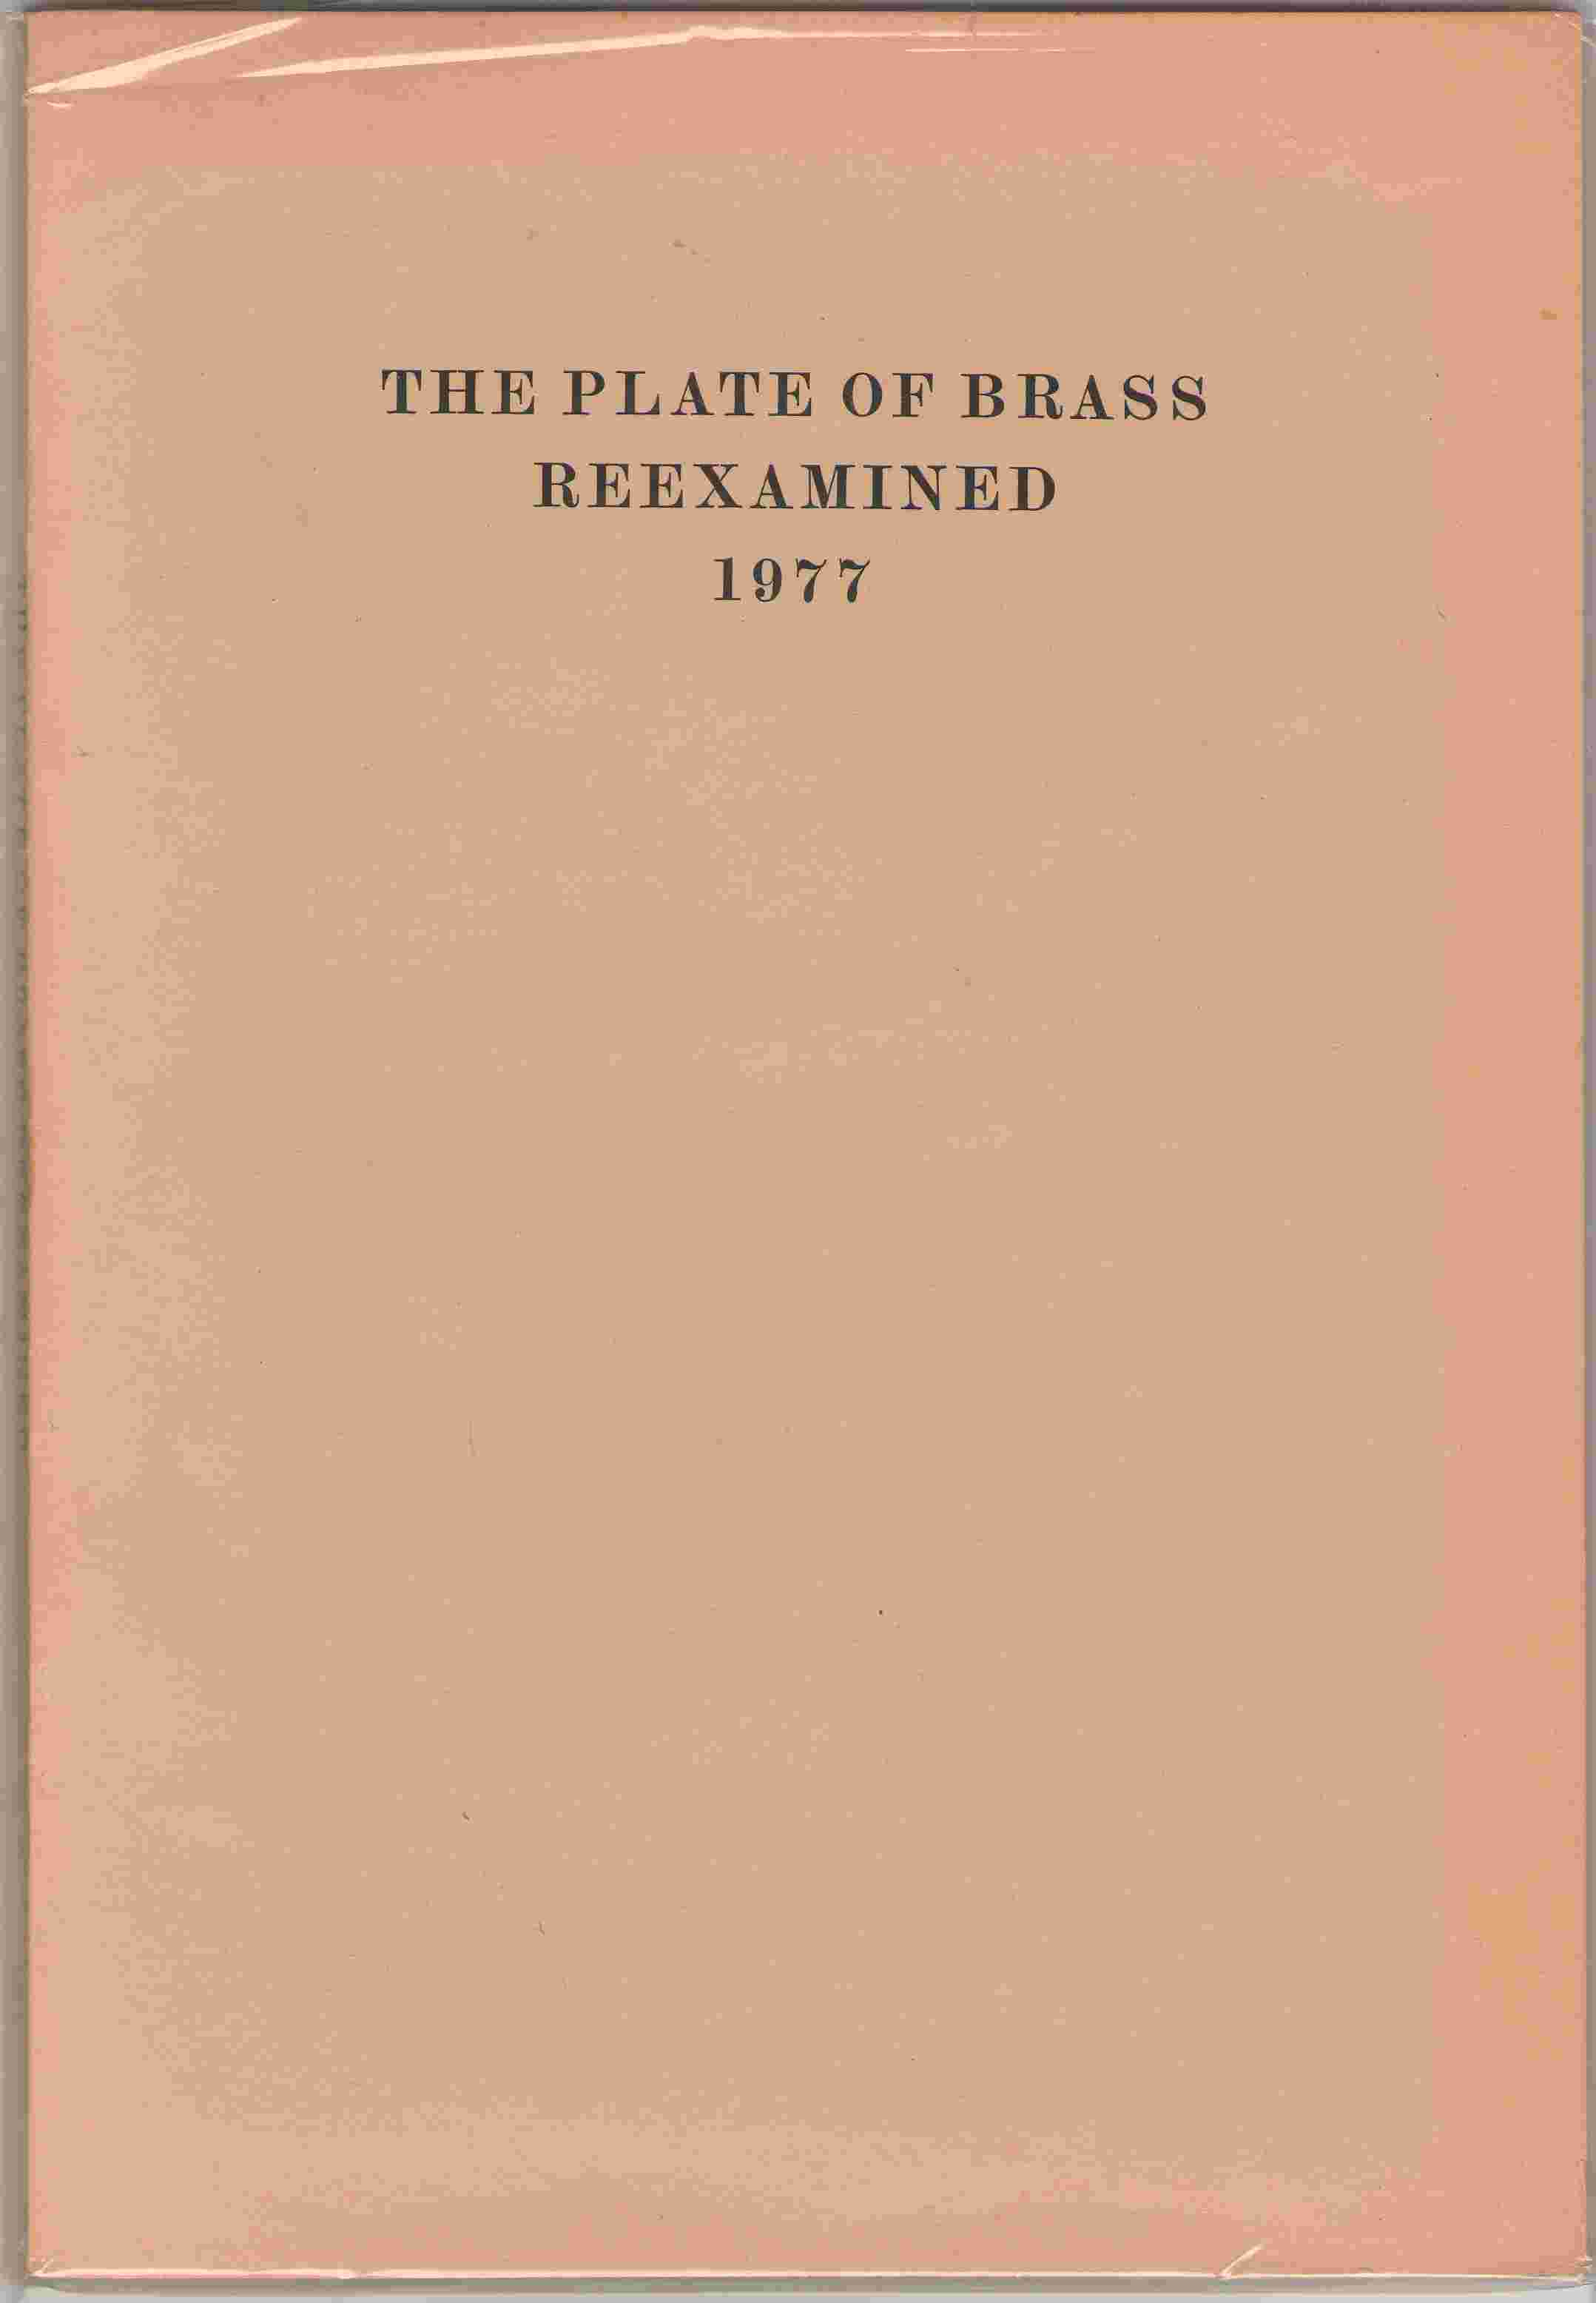 The Plate Of Brass Reexamined 1977 A Report Issued by the Bancroft Library, University of California, Berkeley, Bancroft Library